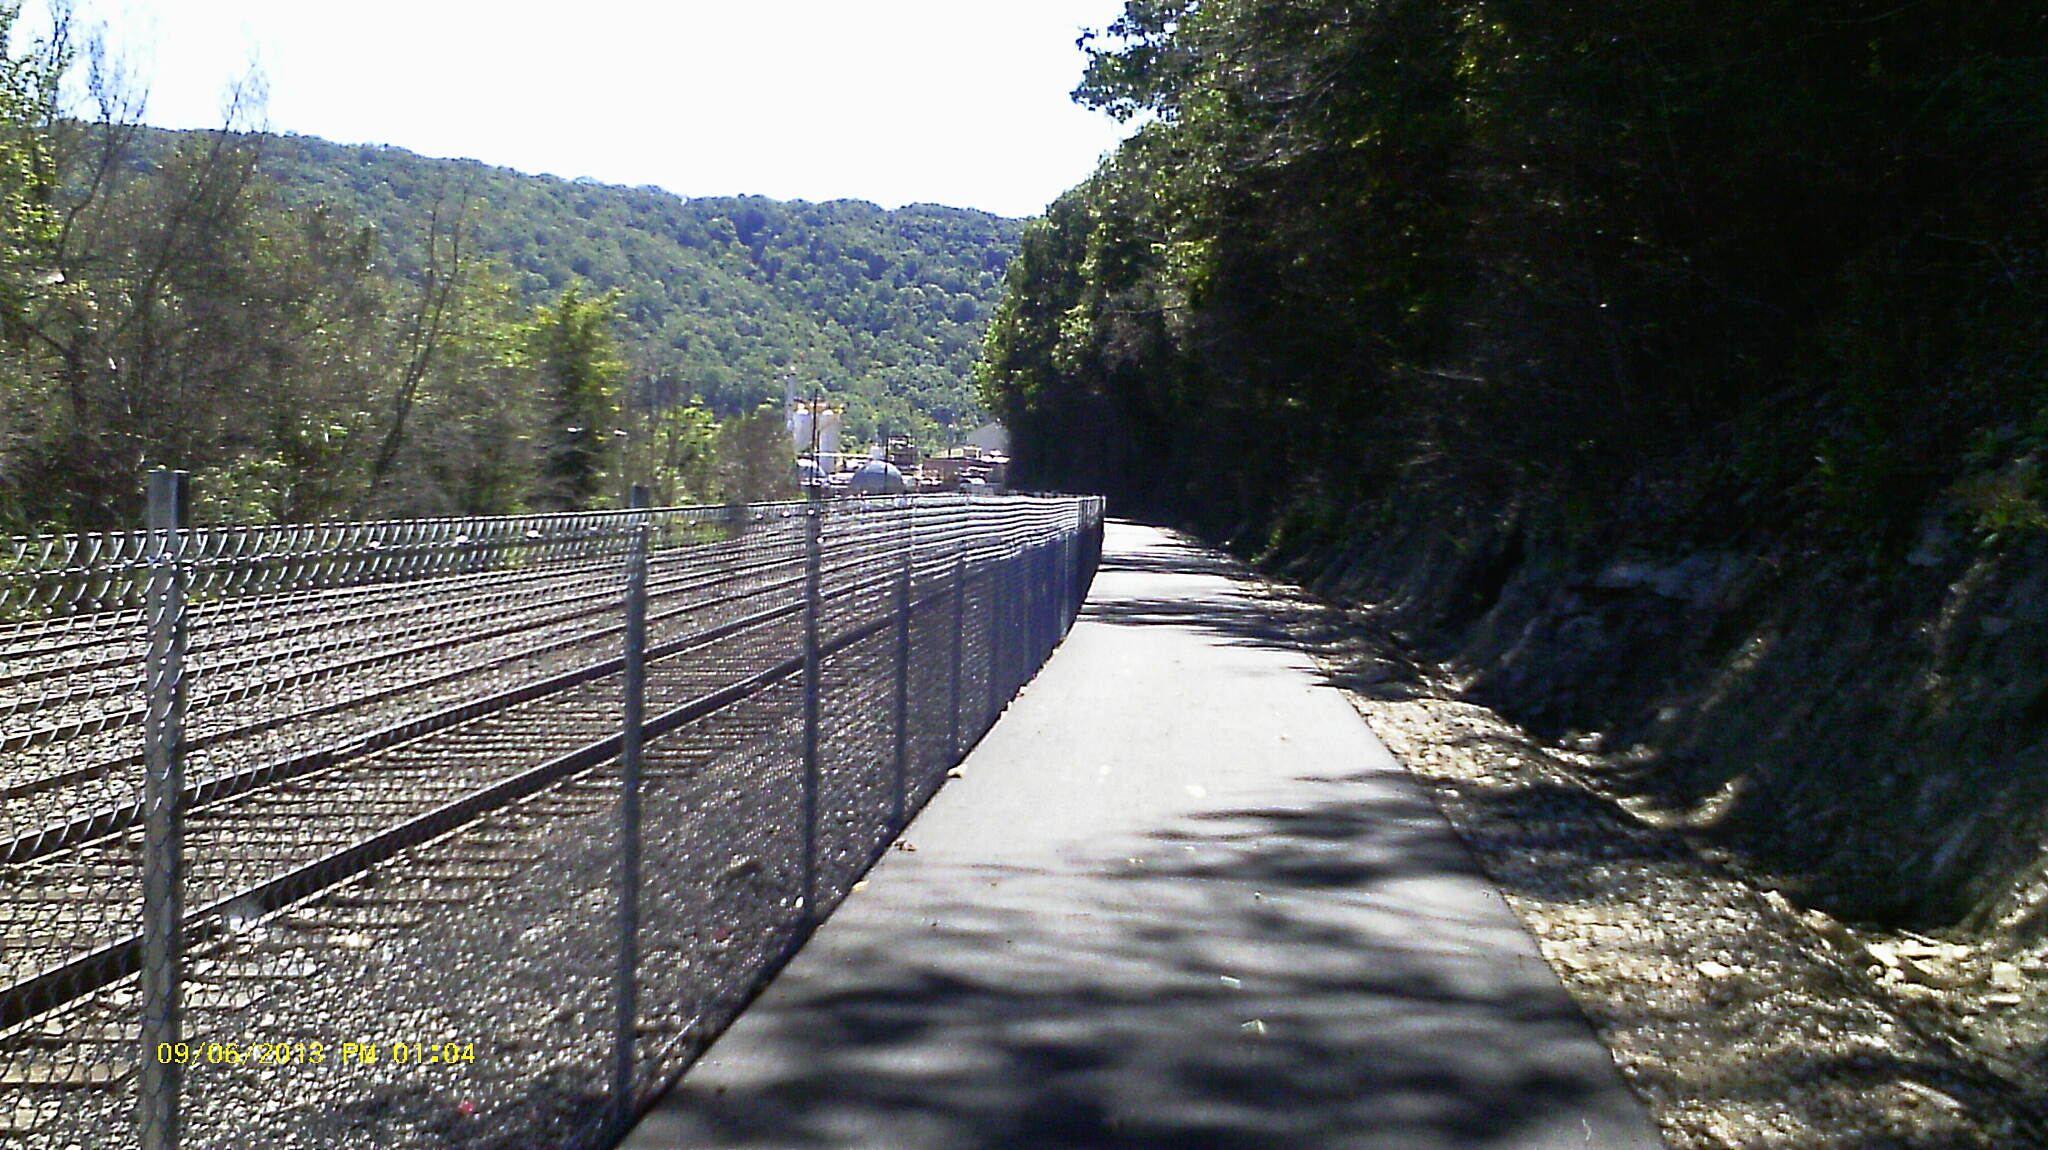 McClintock Trail Nice Trail surface  The trail was very nice. even though they are putting the finishing touches on the bridge and the ribbon cutting is set for the 17th. I still got in a nice smooth fast ride